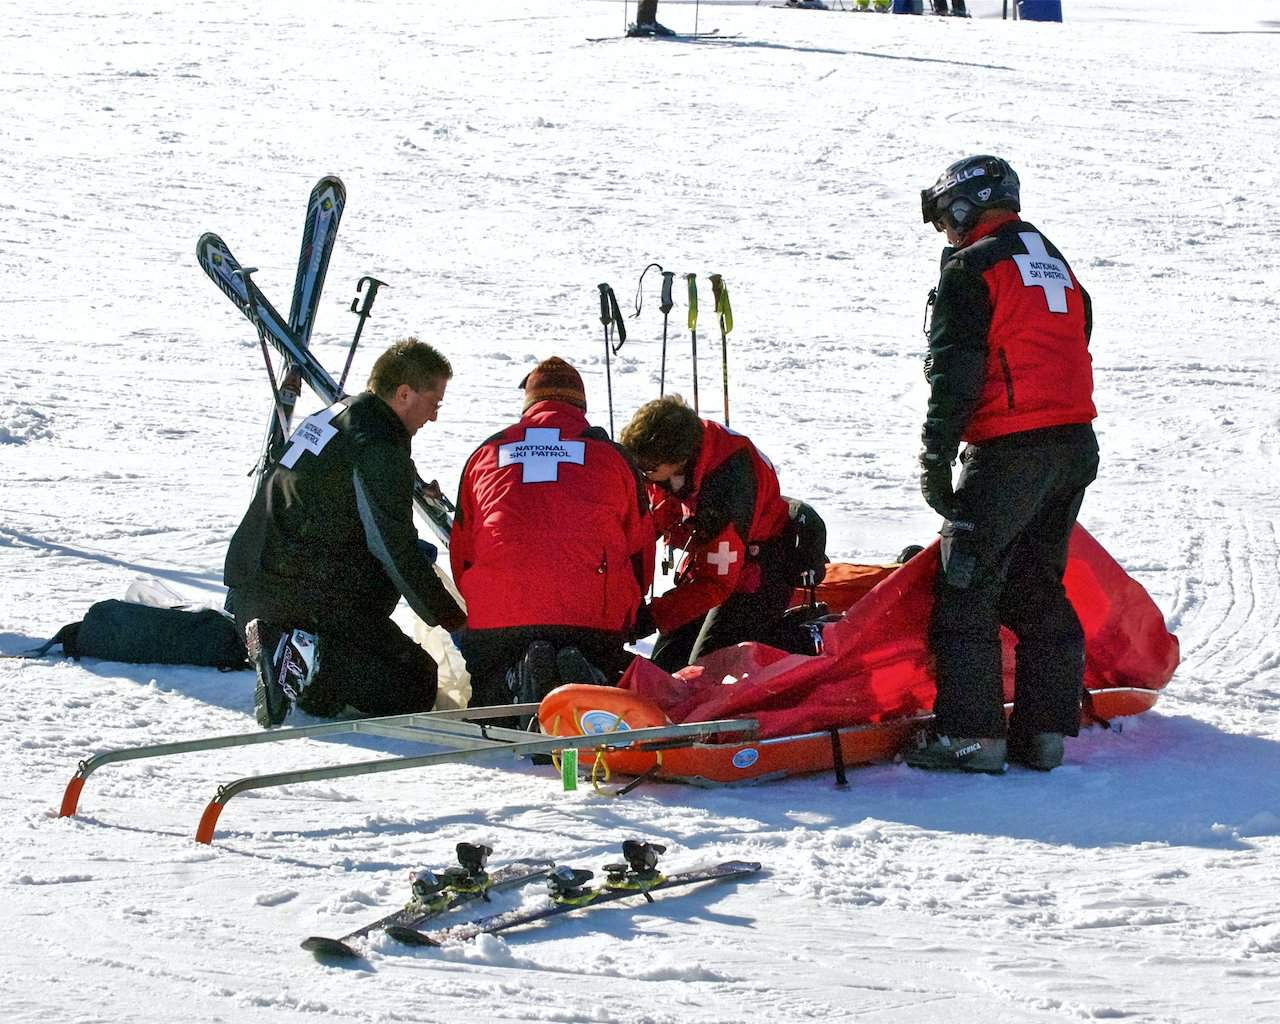 Accident on the slopes